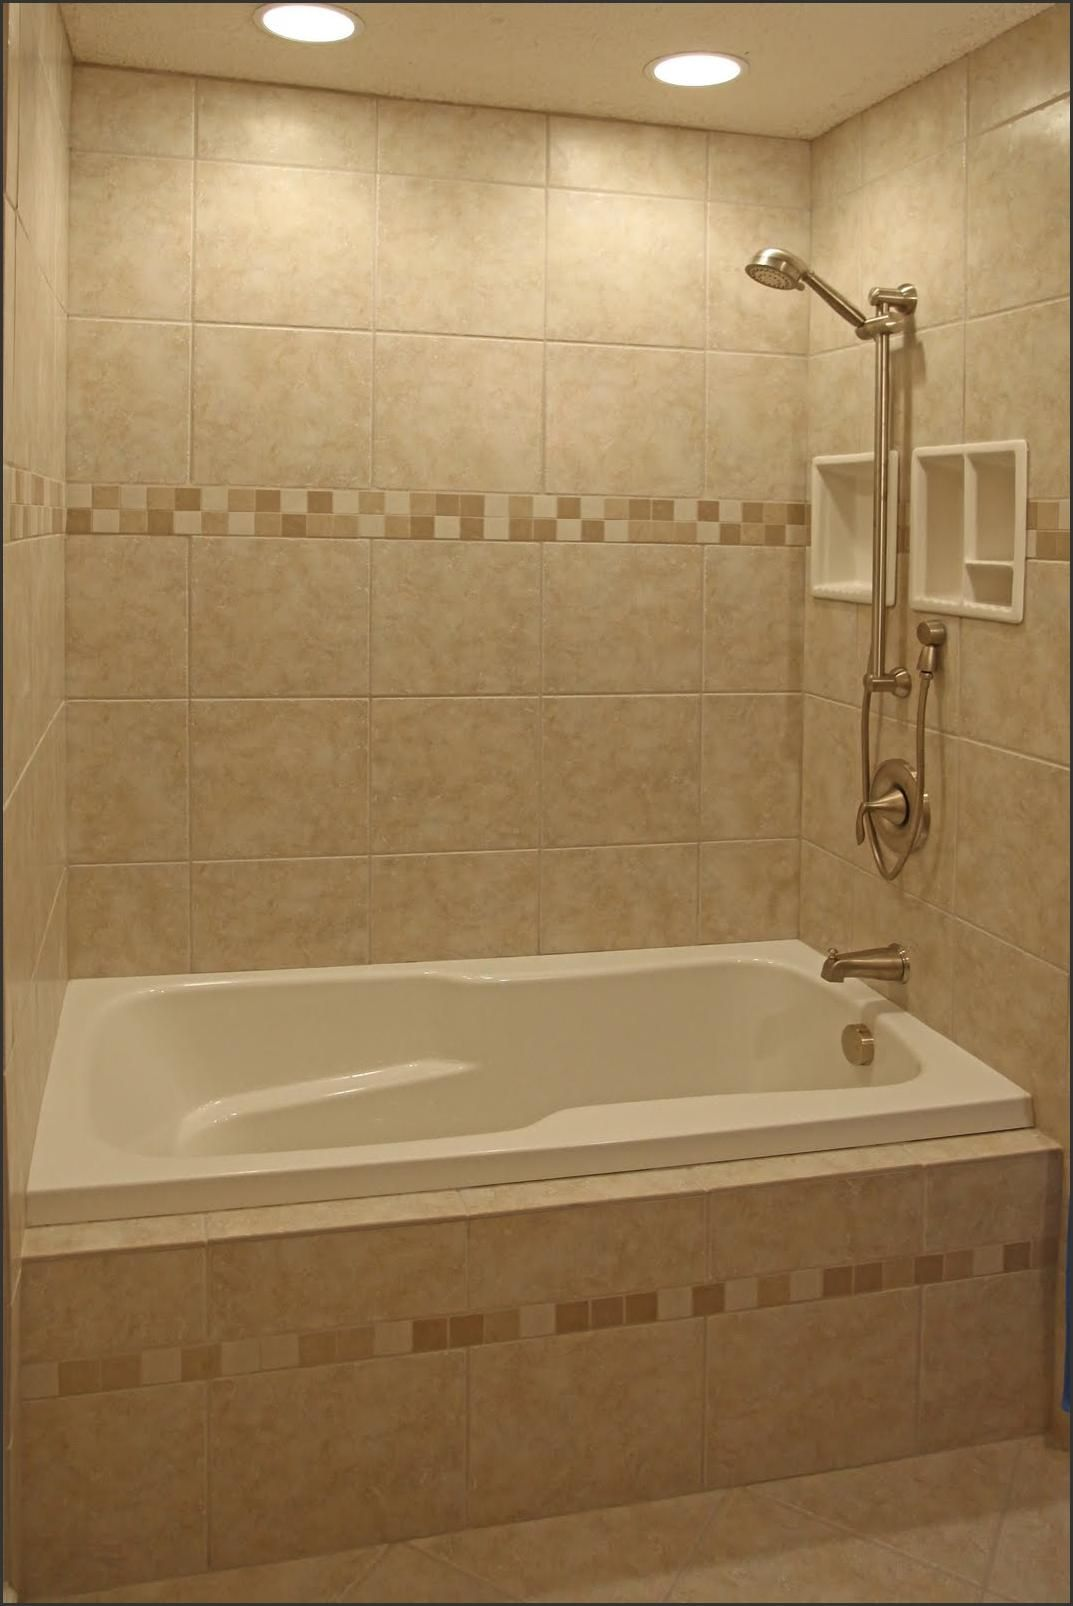 love everything in this: tub insert, neutral warm tile with accent